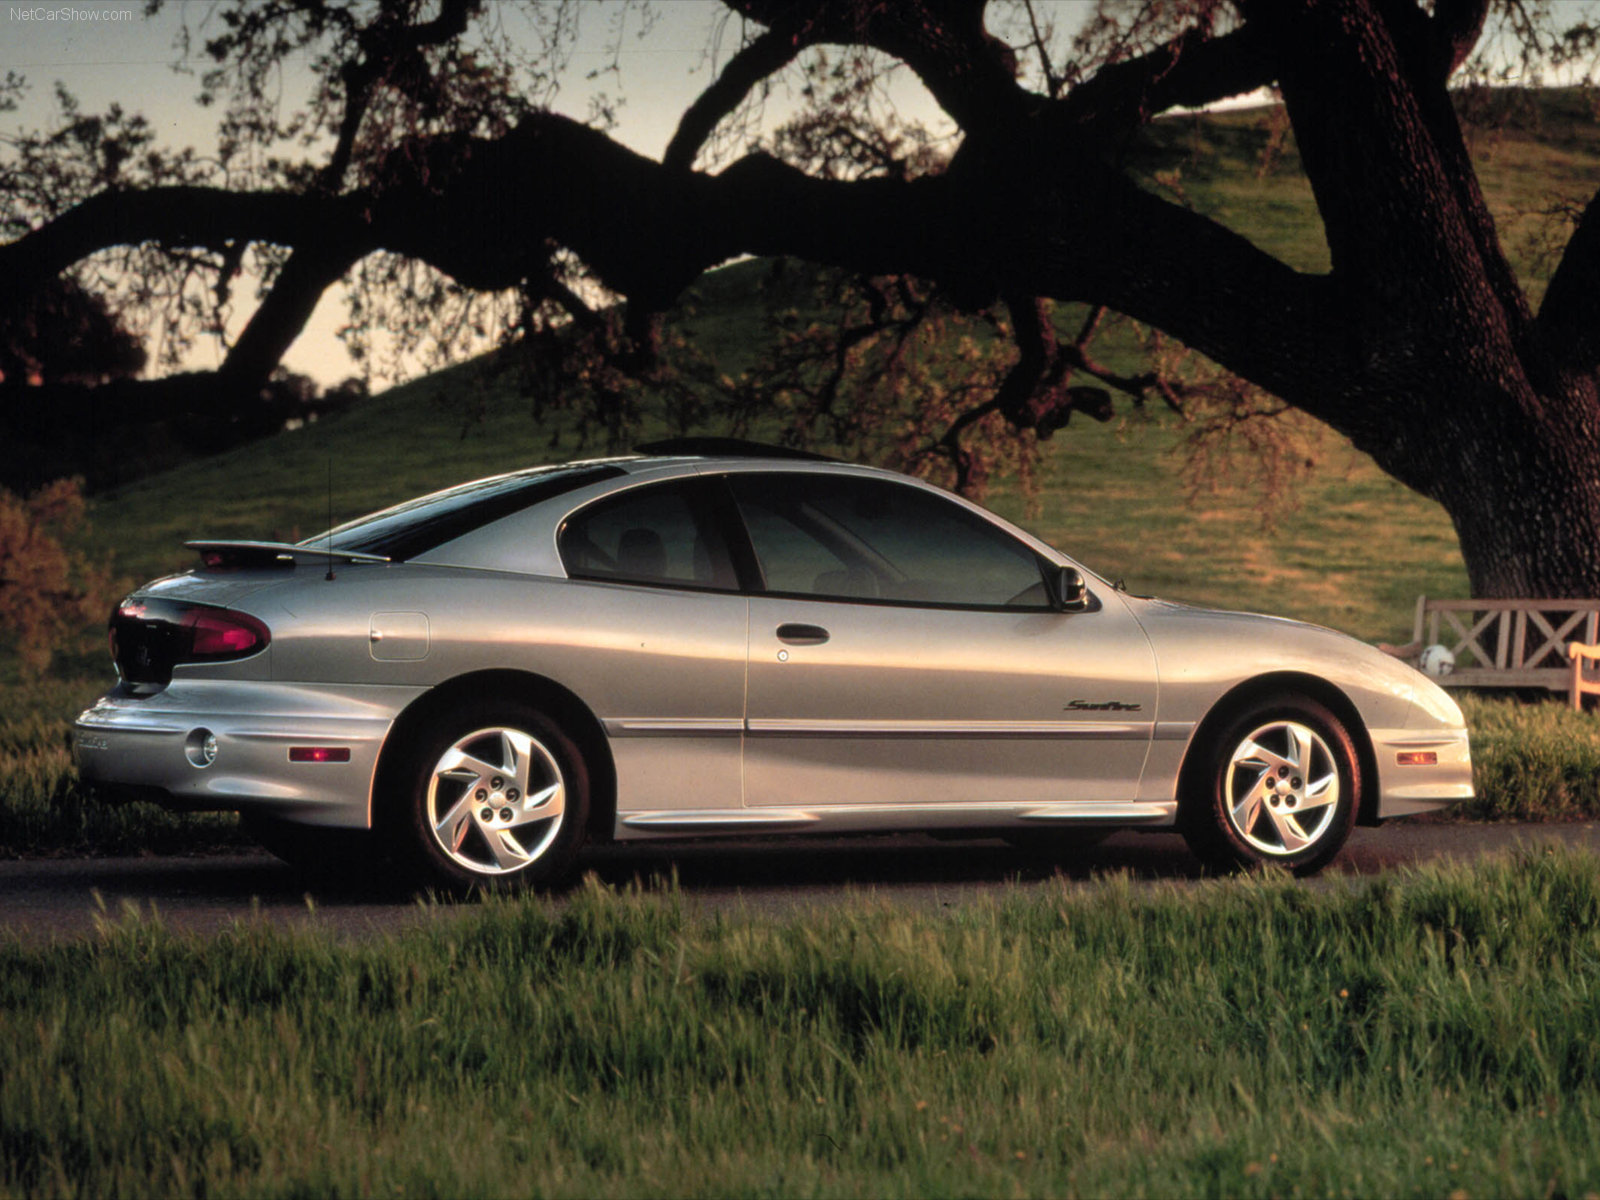 2000 pontiac sunfire information and photos zombiedrive. Black Bedroom Furniture Sets. Home Design Ideas